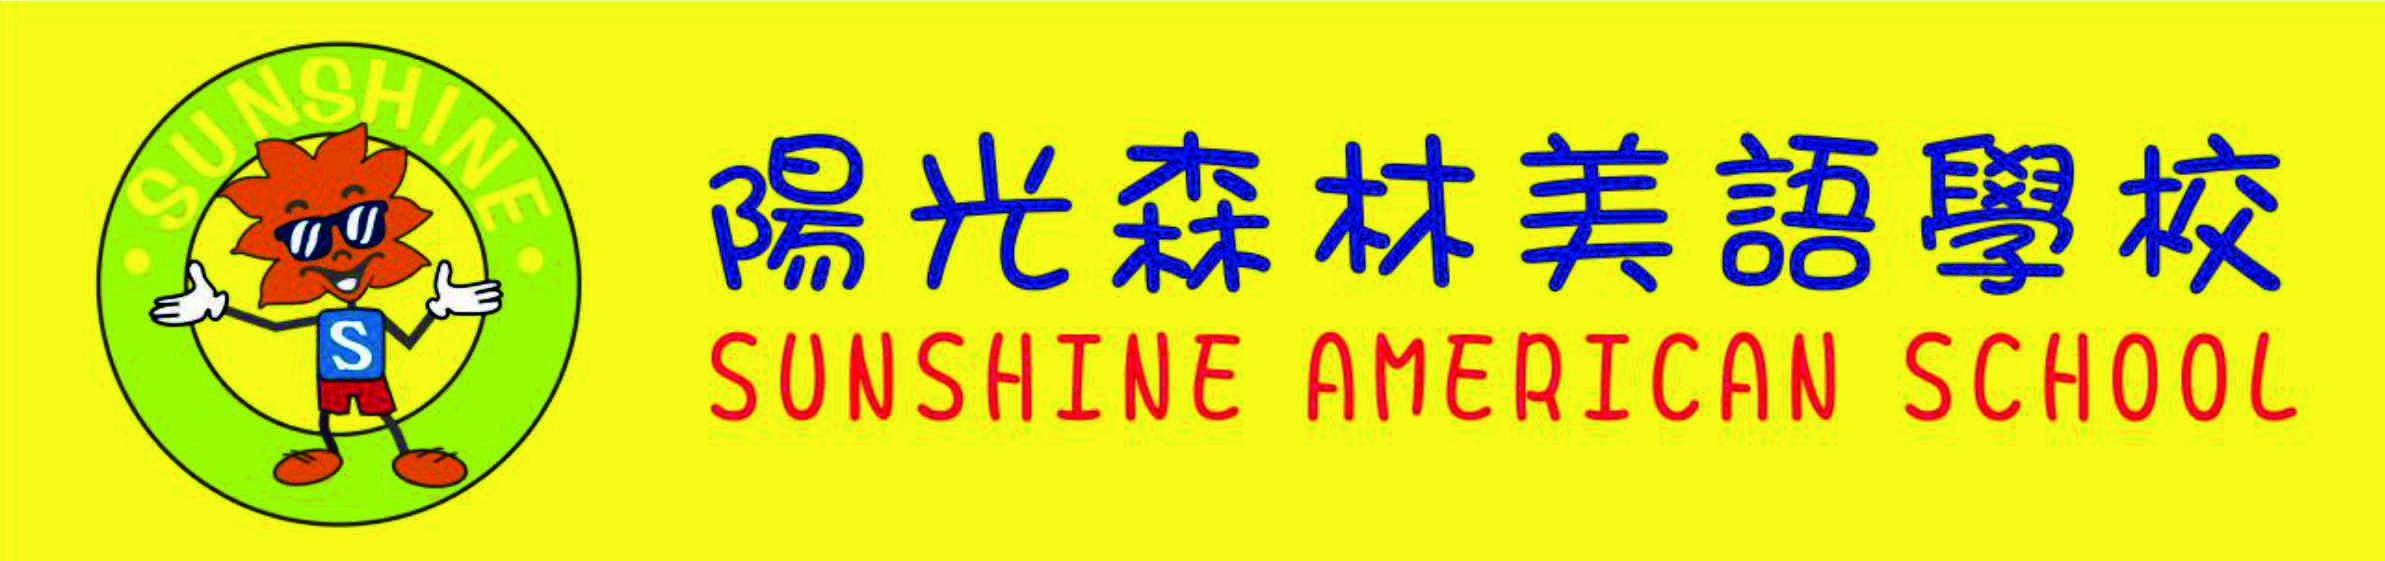 Teaching English and Living in Taiwan Jobs Available 教學工作, Sunshine American School 2021 February Native English-Speaking Teachers Wanted! (Currently in Taiwan) image